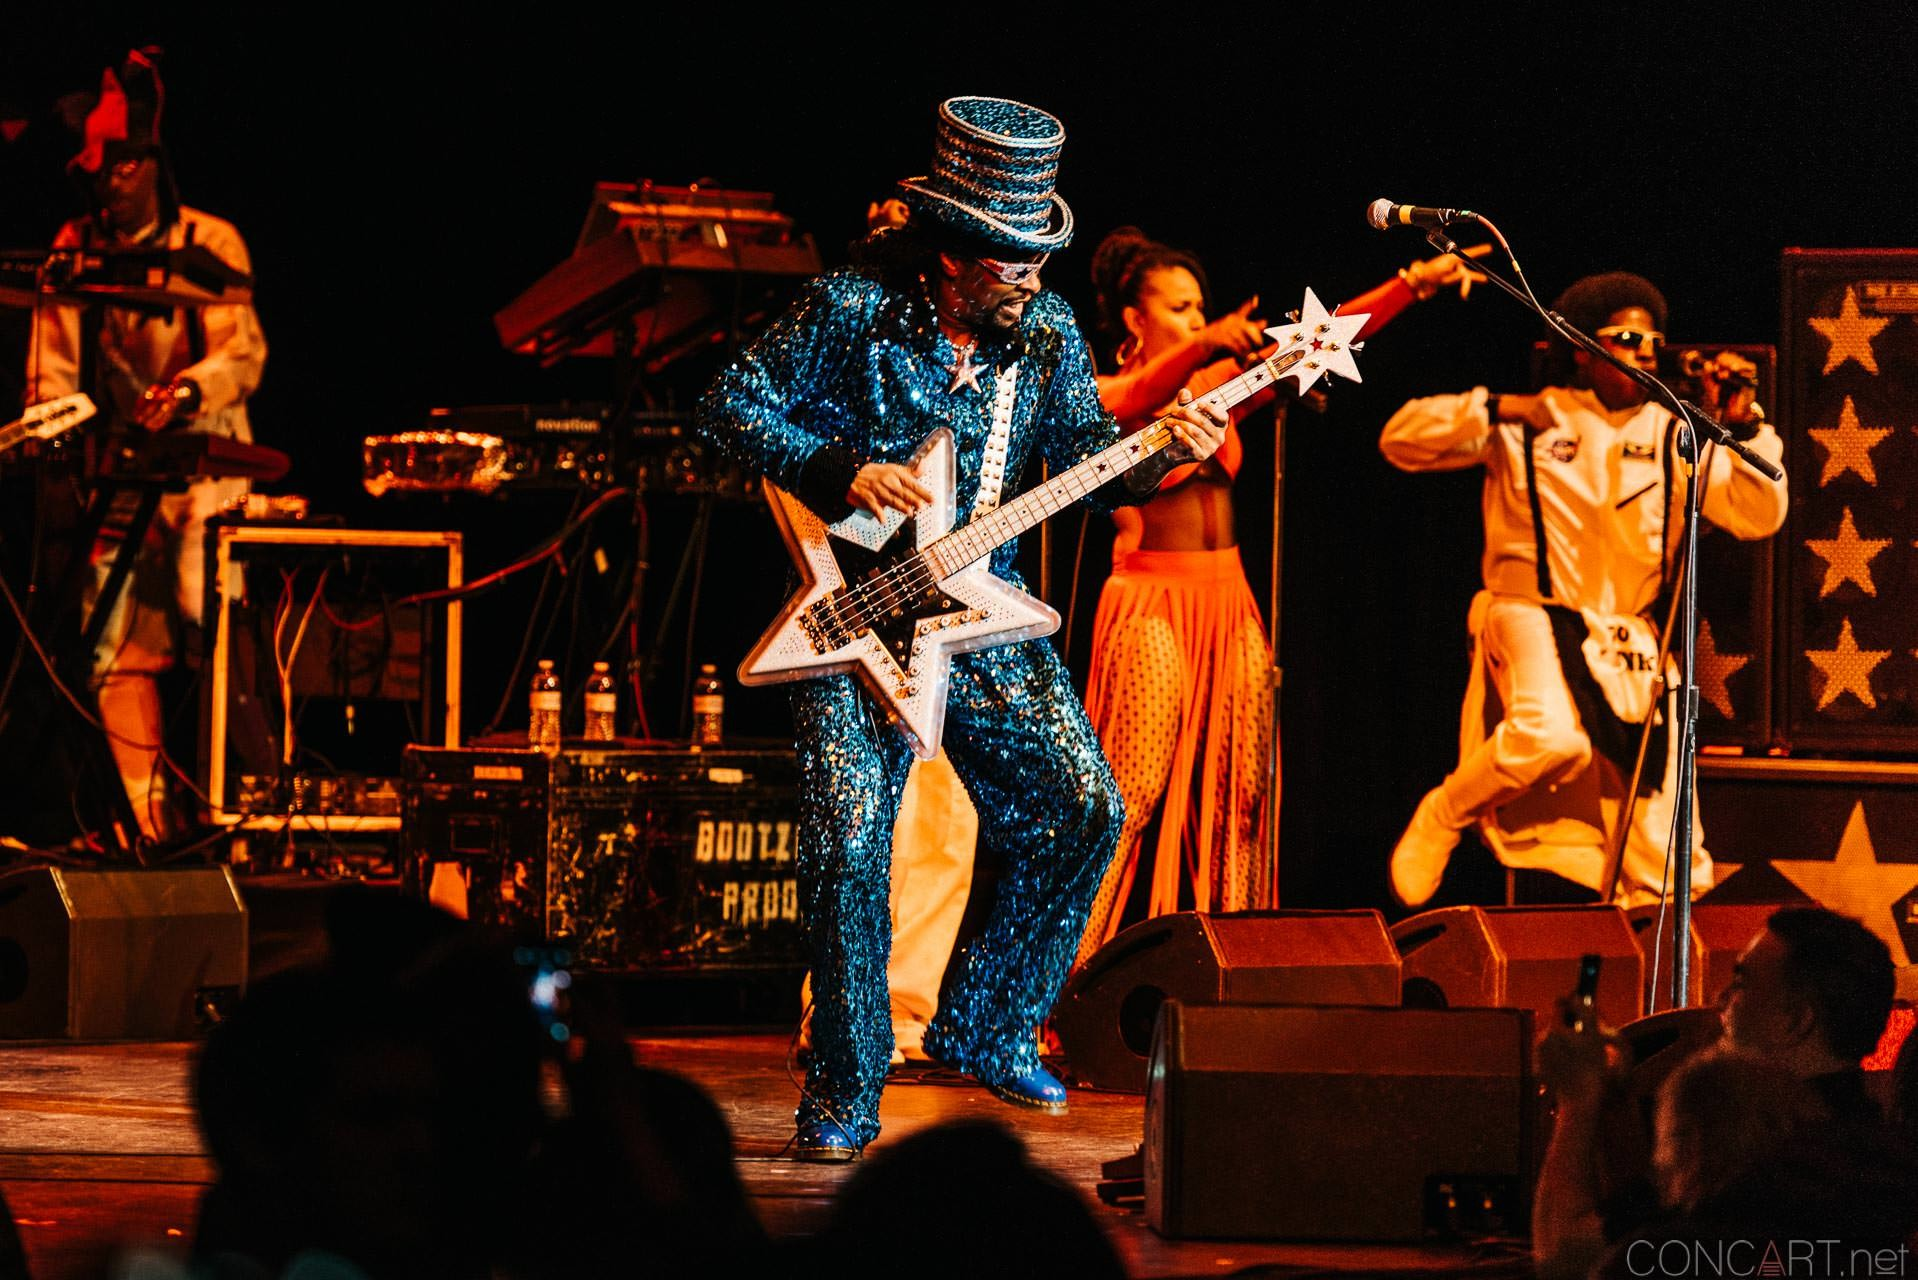 Bootsy Collins photo by Sean Molin 8